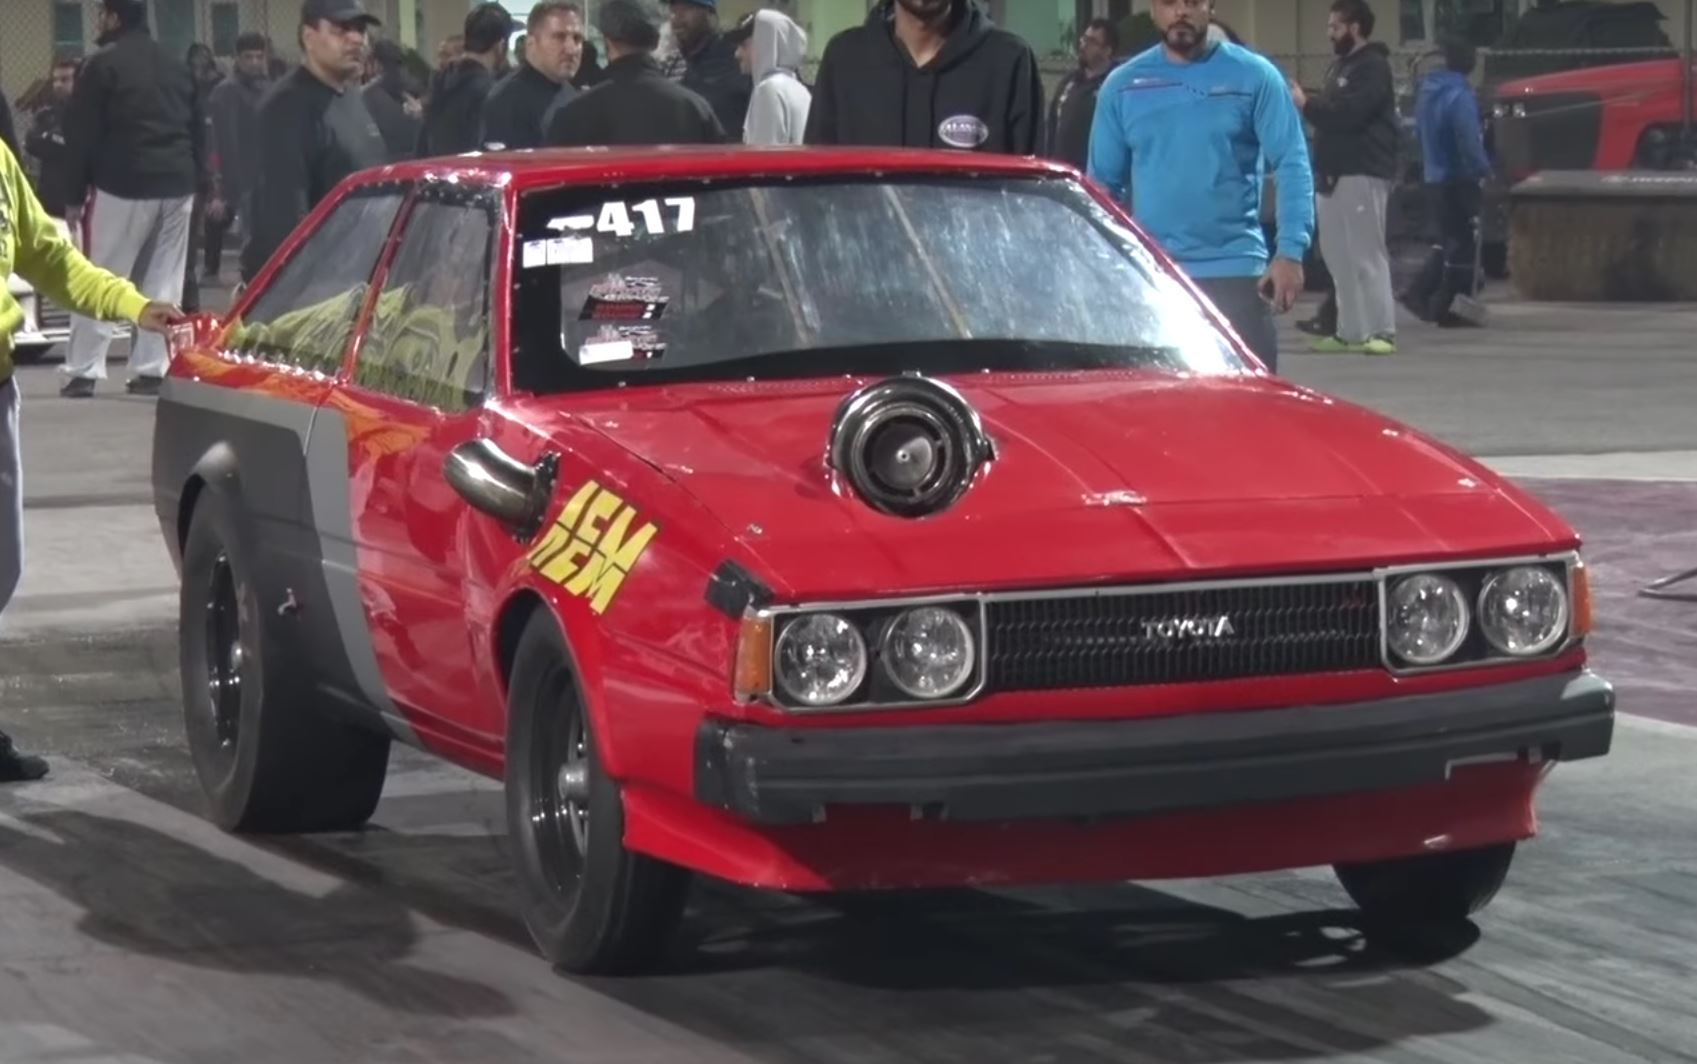 Take a Look At This Mammoth Turbo On a 2JZ Corolla! - Garage Dreams